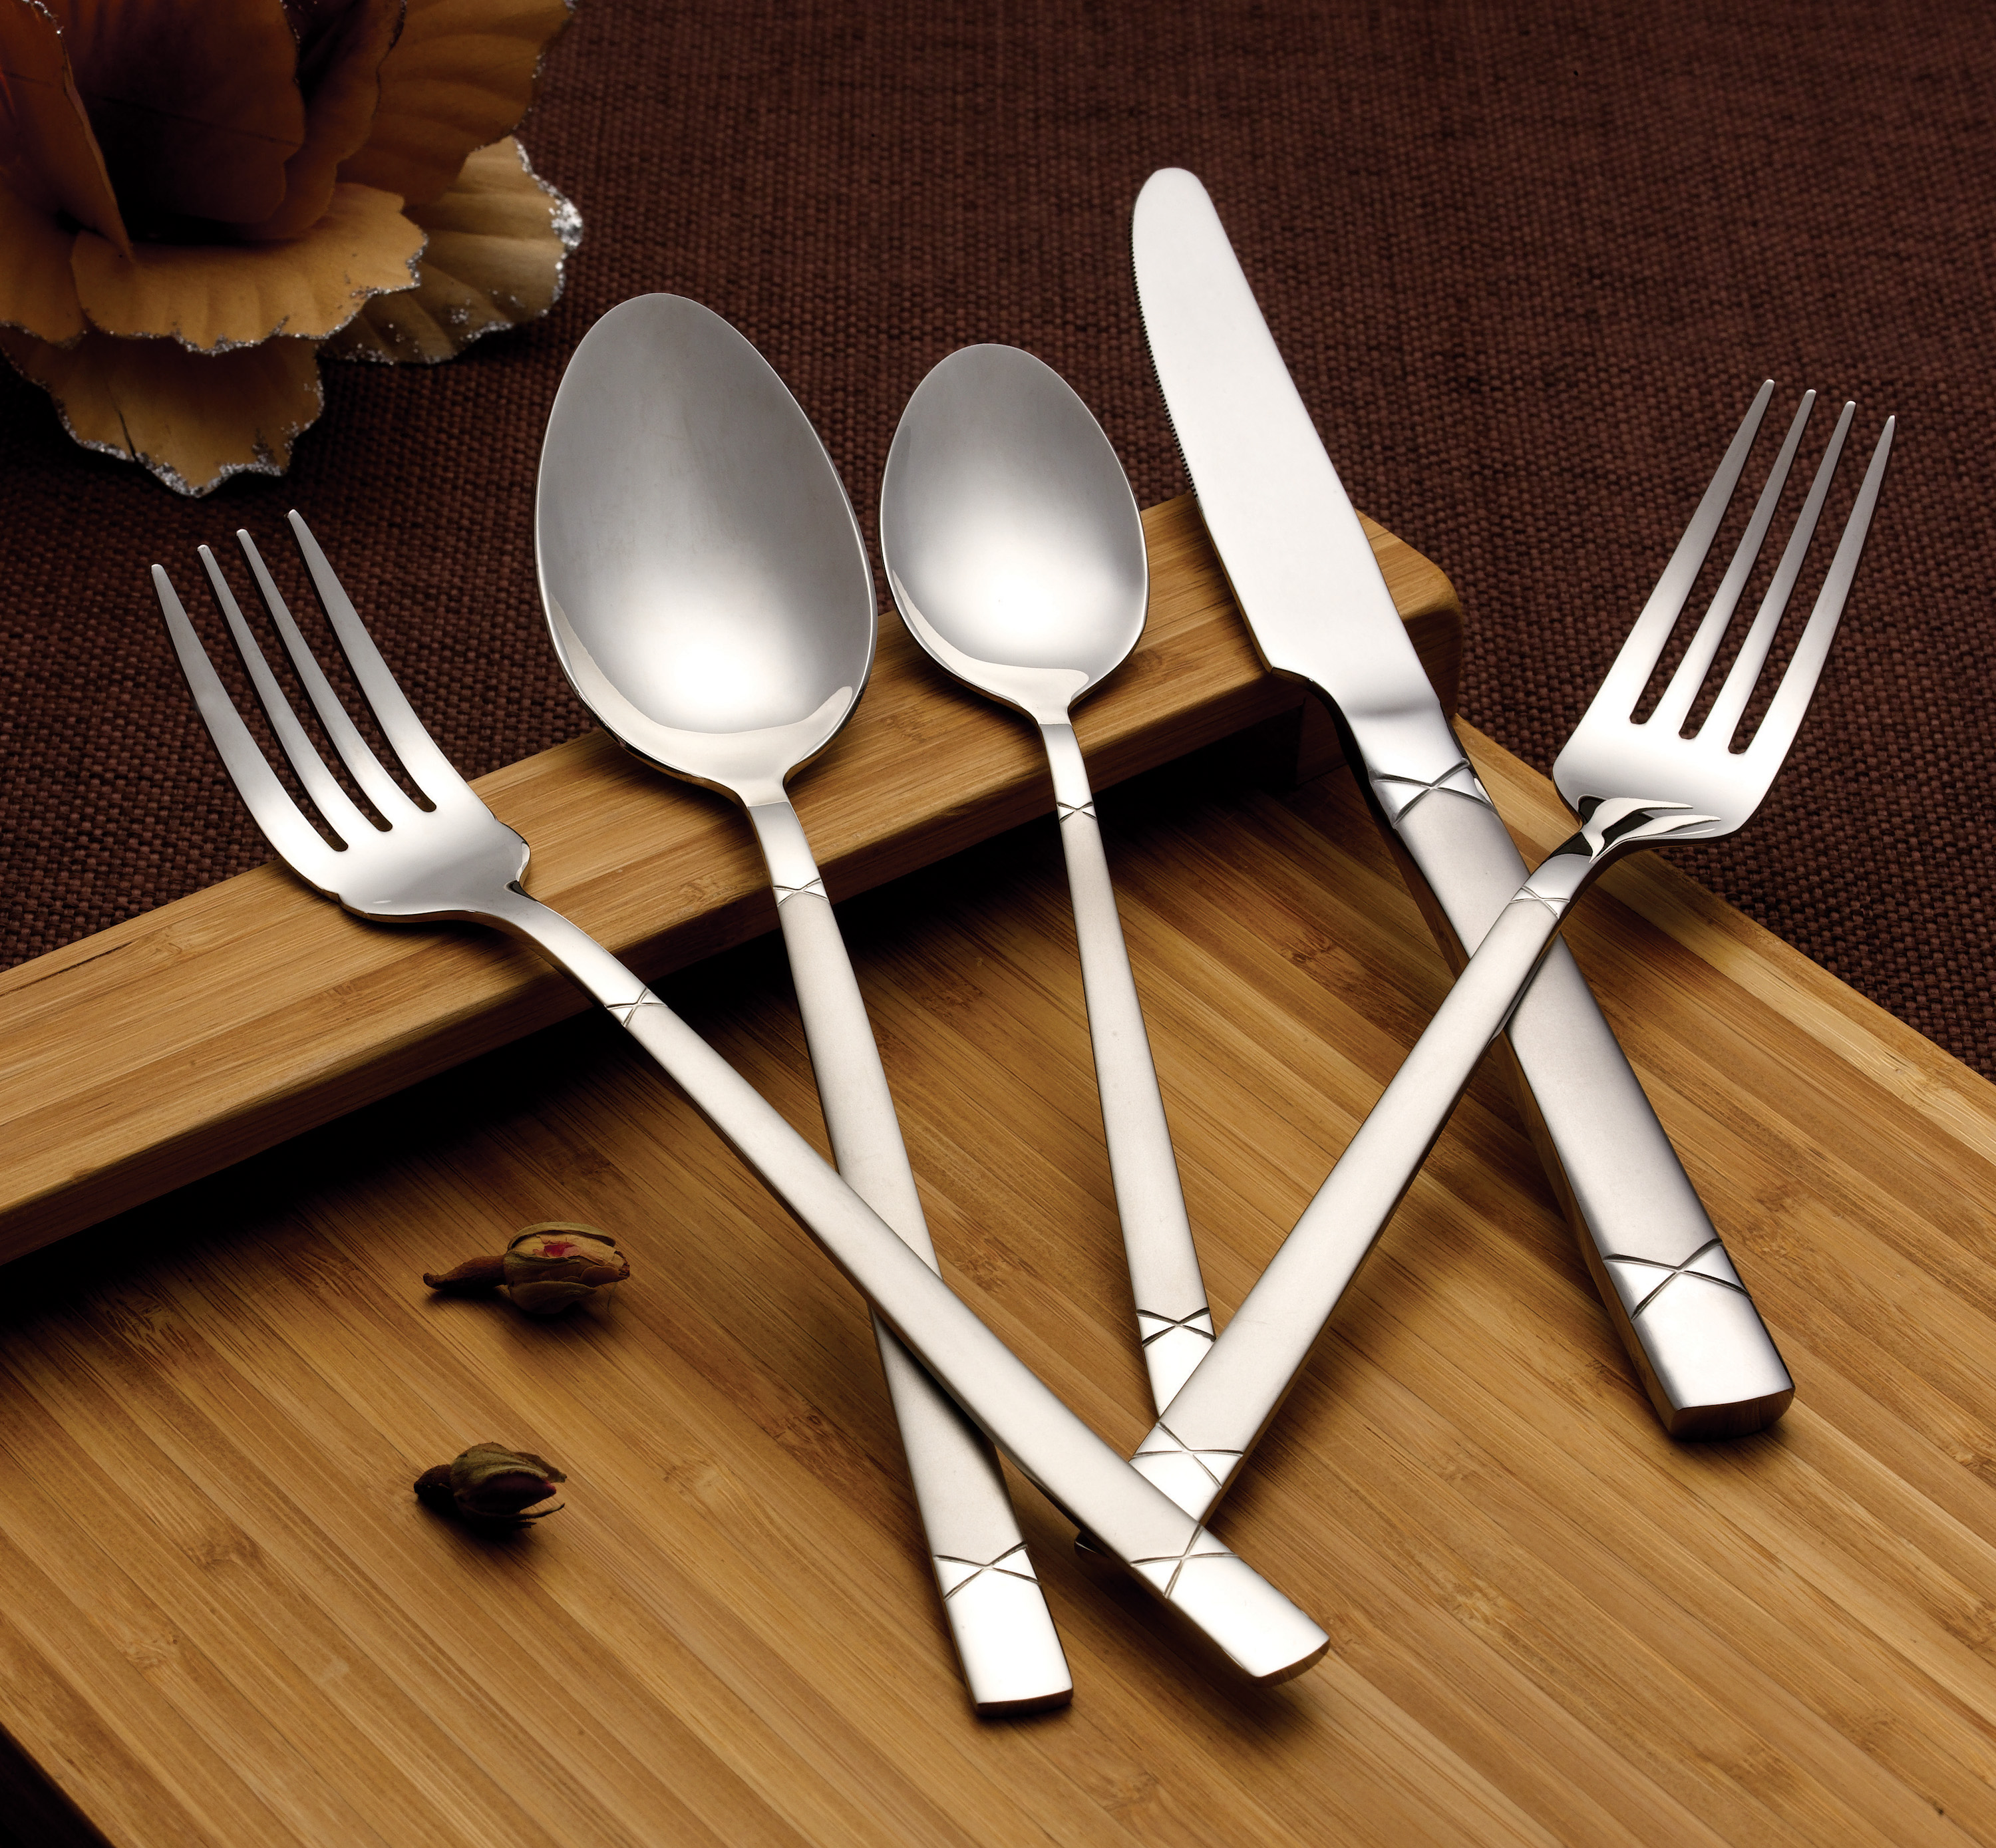 18 10 Silverware Sets 20 Piece 18 10 Flatware Set Service For Mirror And Satin